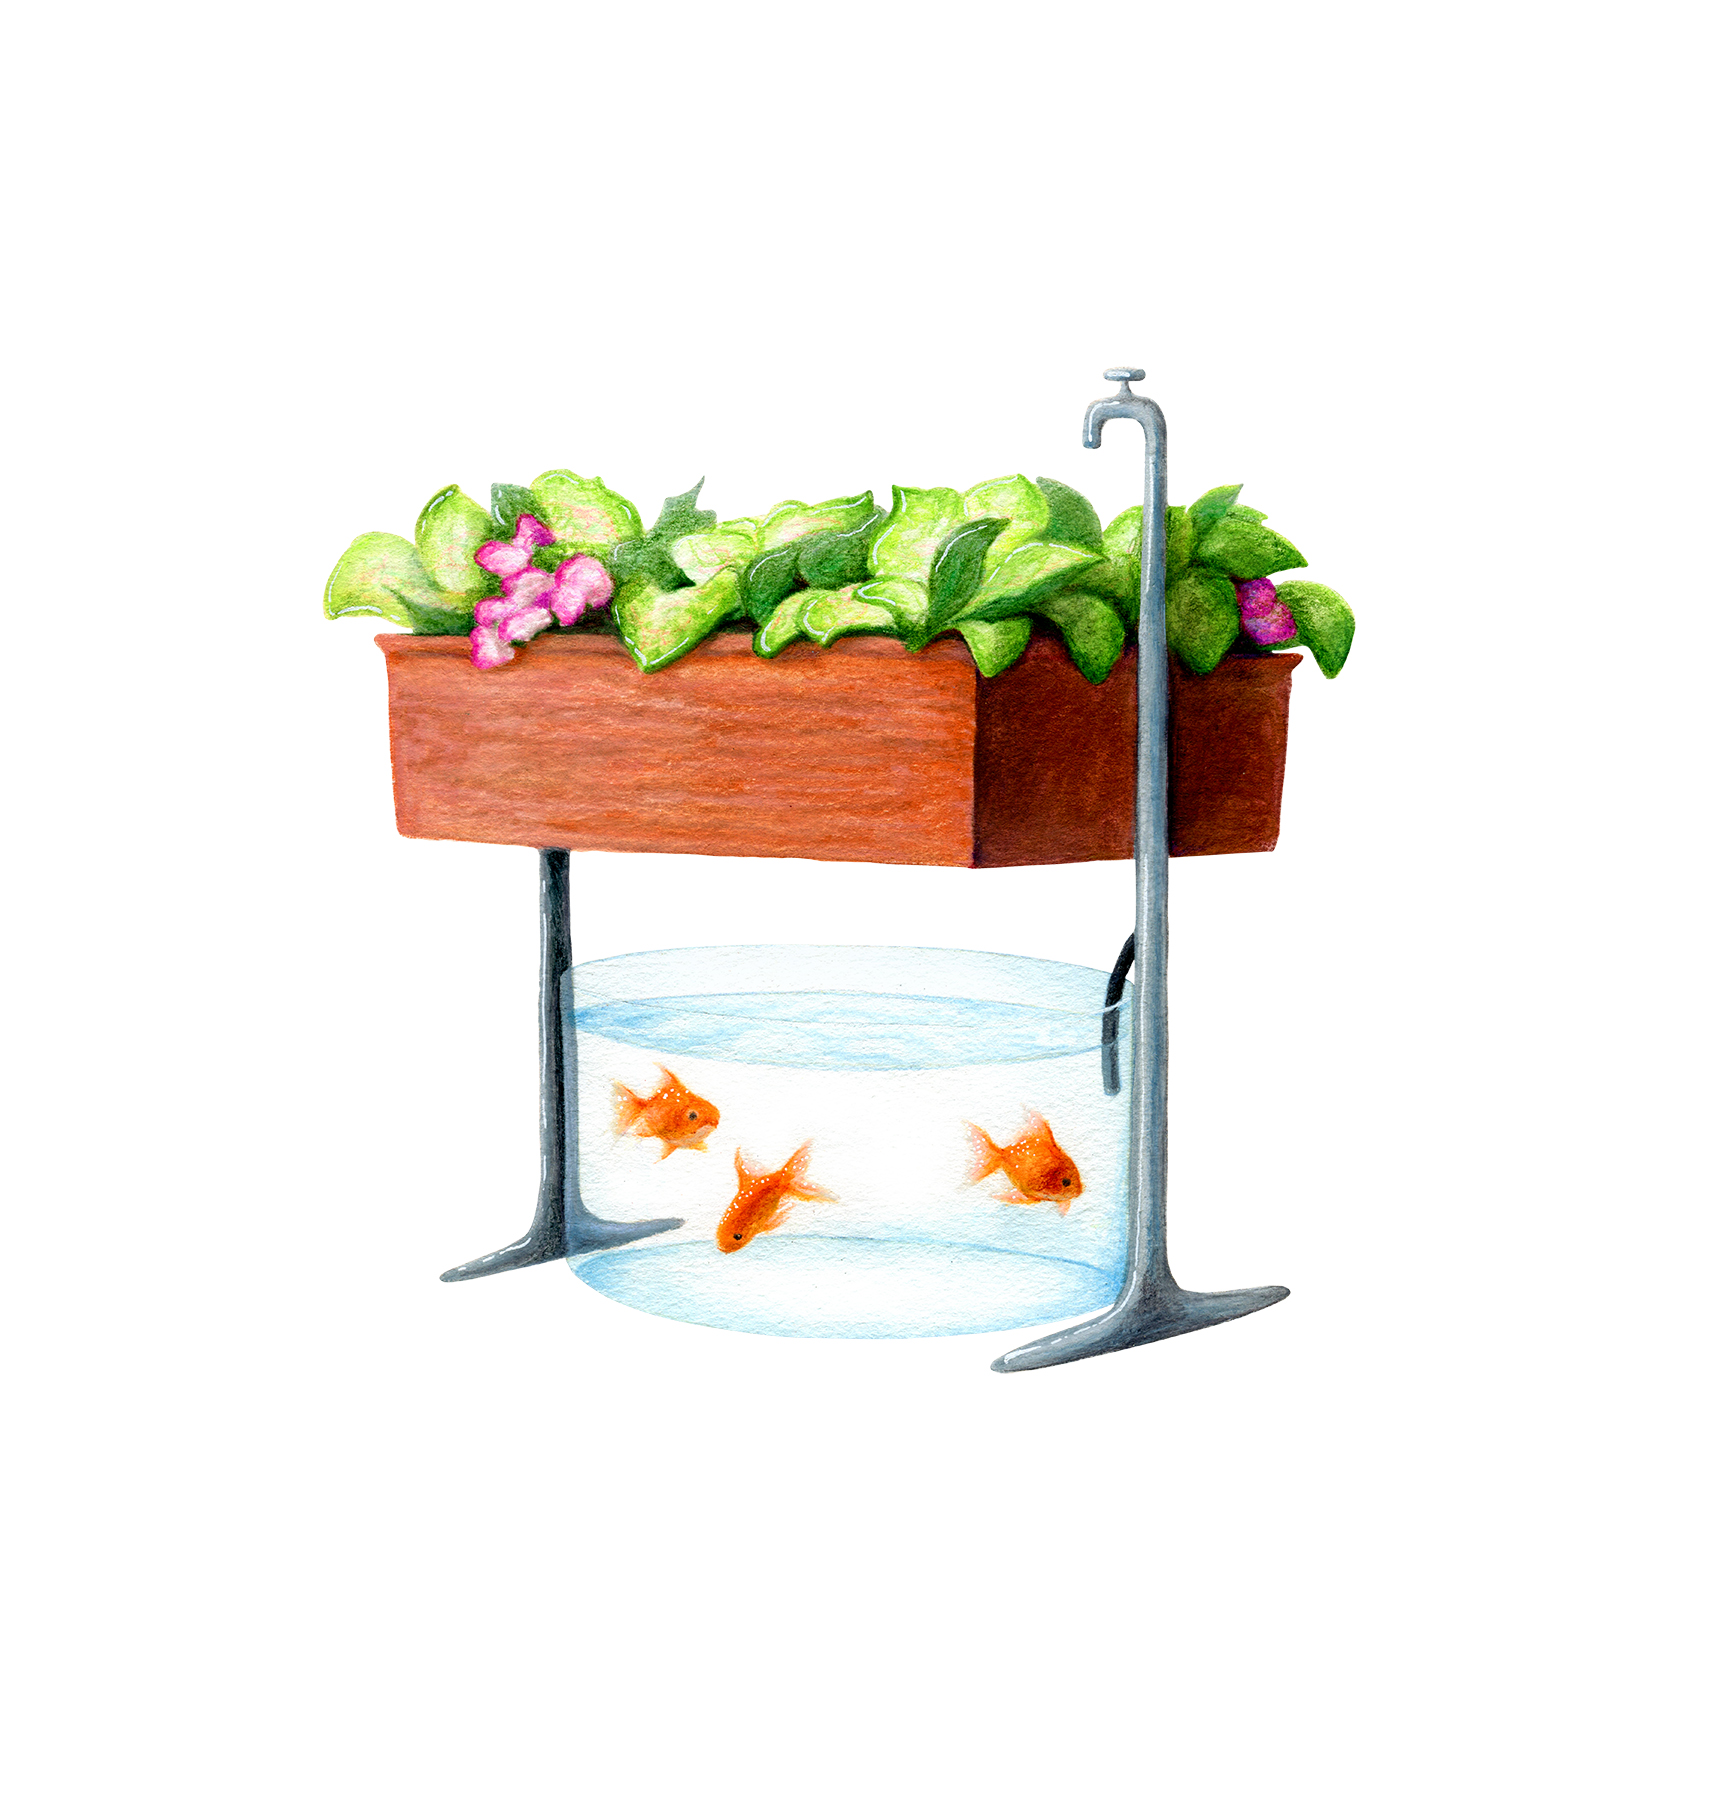 Illustration: aquaponics setup